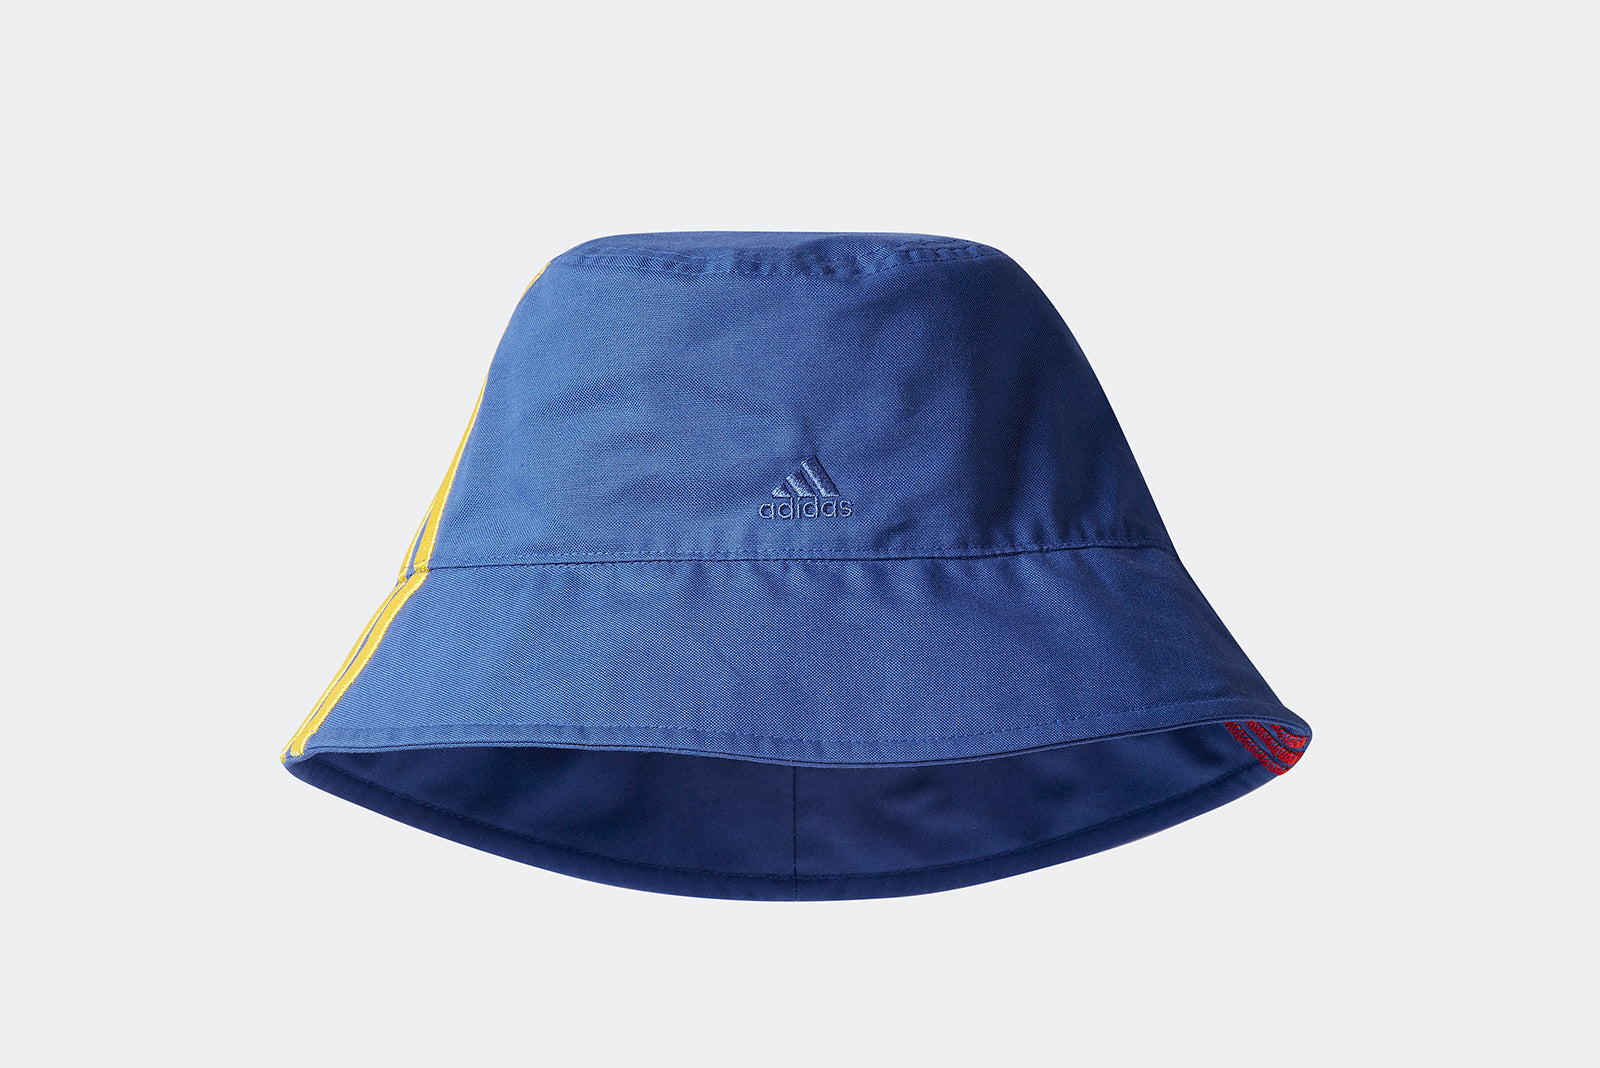 796e3ebfb24 adidas Consortium Bucket Hat x Engineered Garments DW4358 Bold Blue Price   £49.00